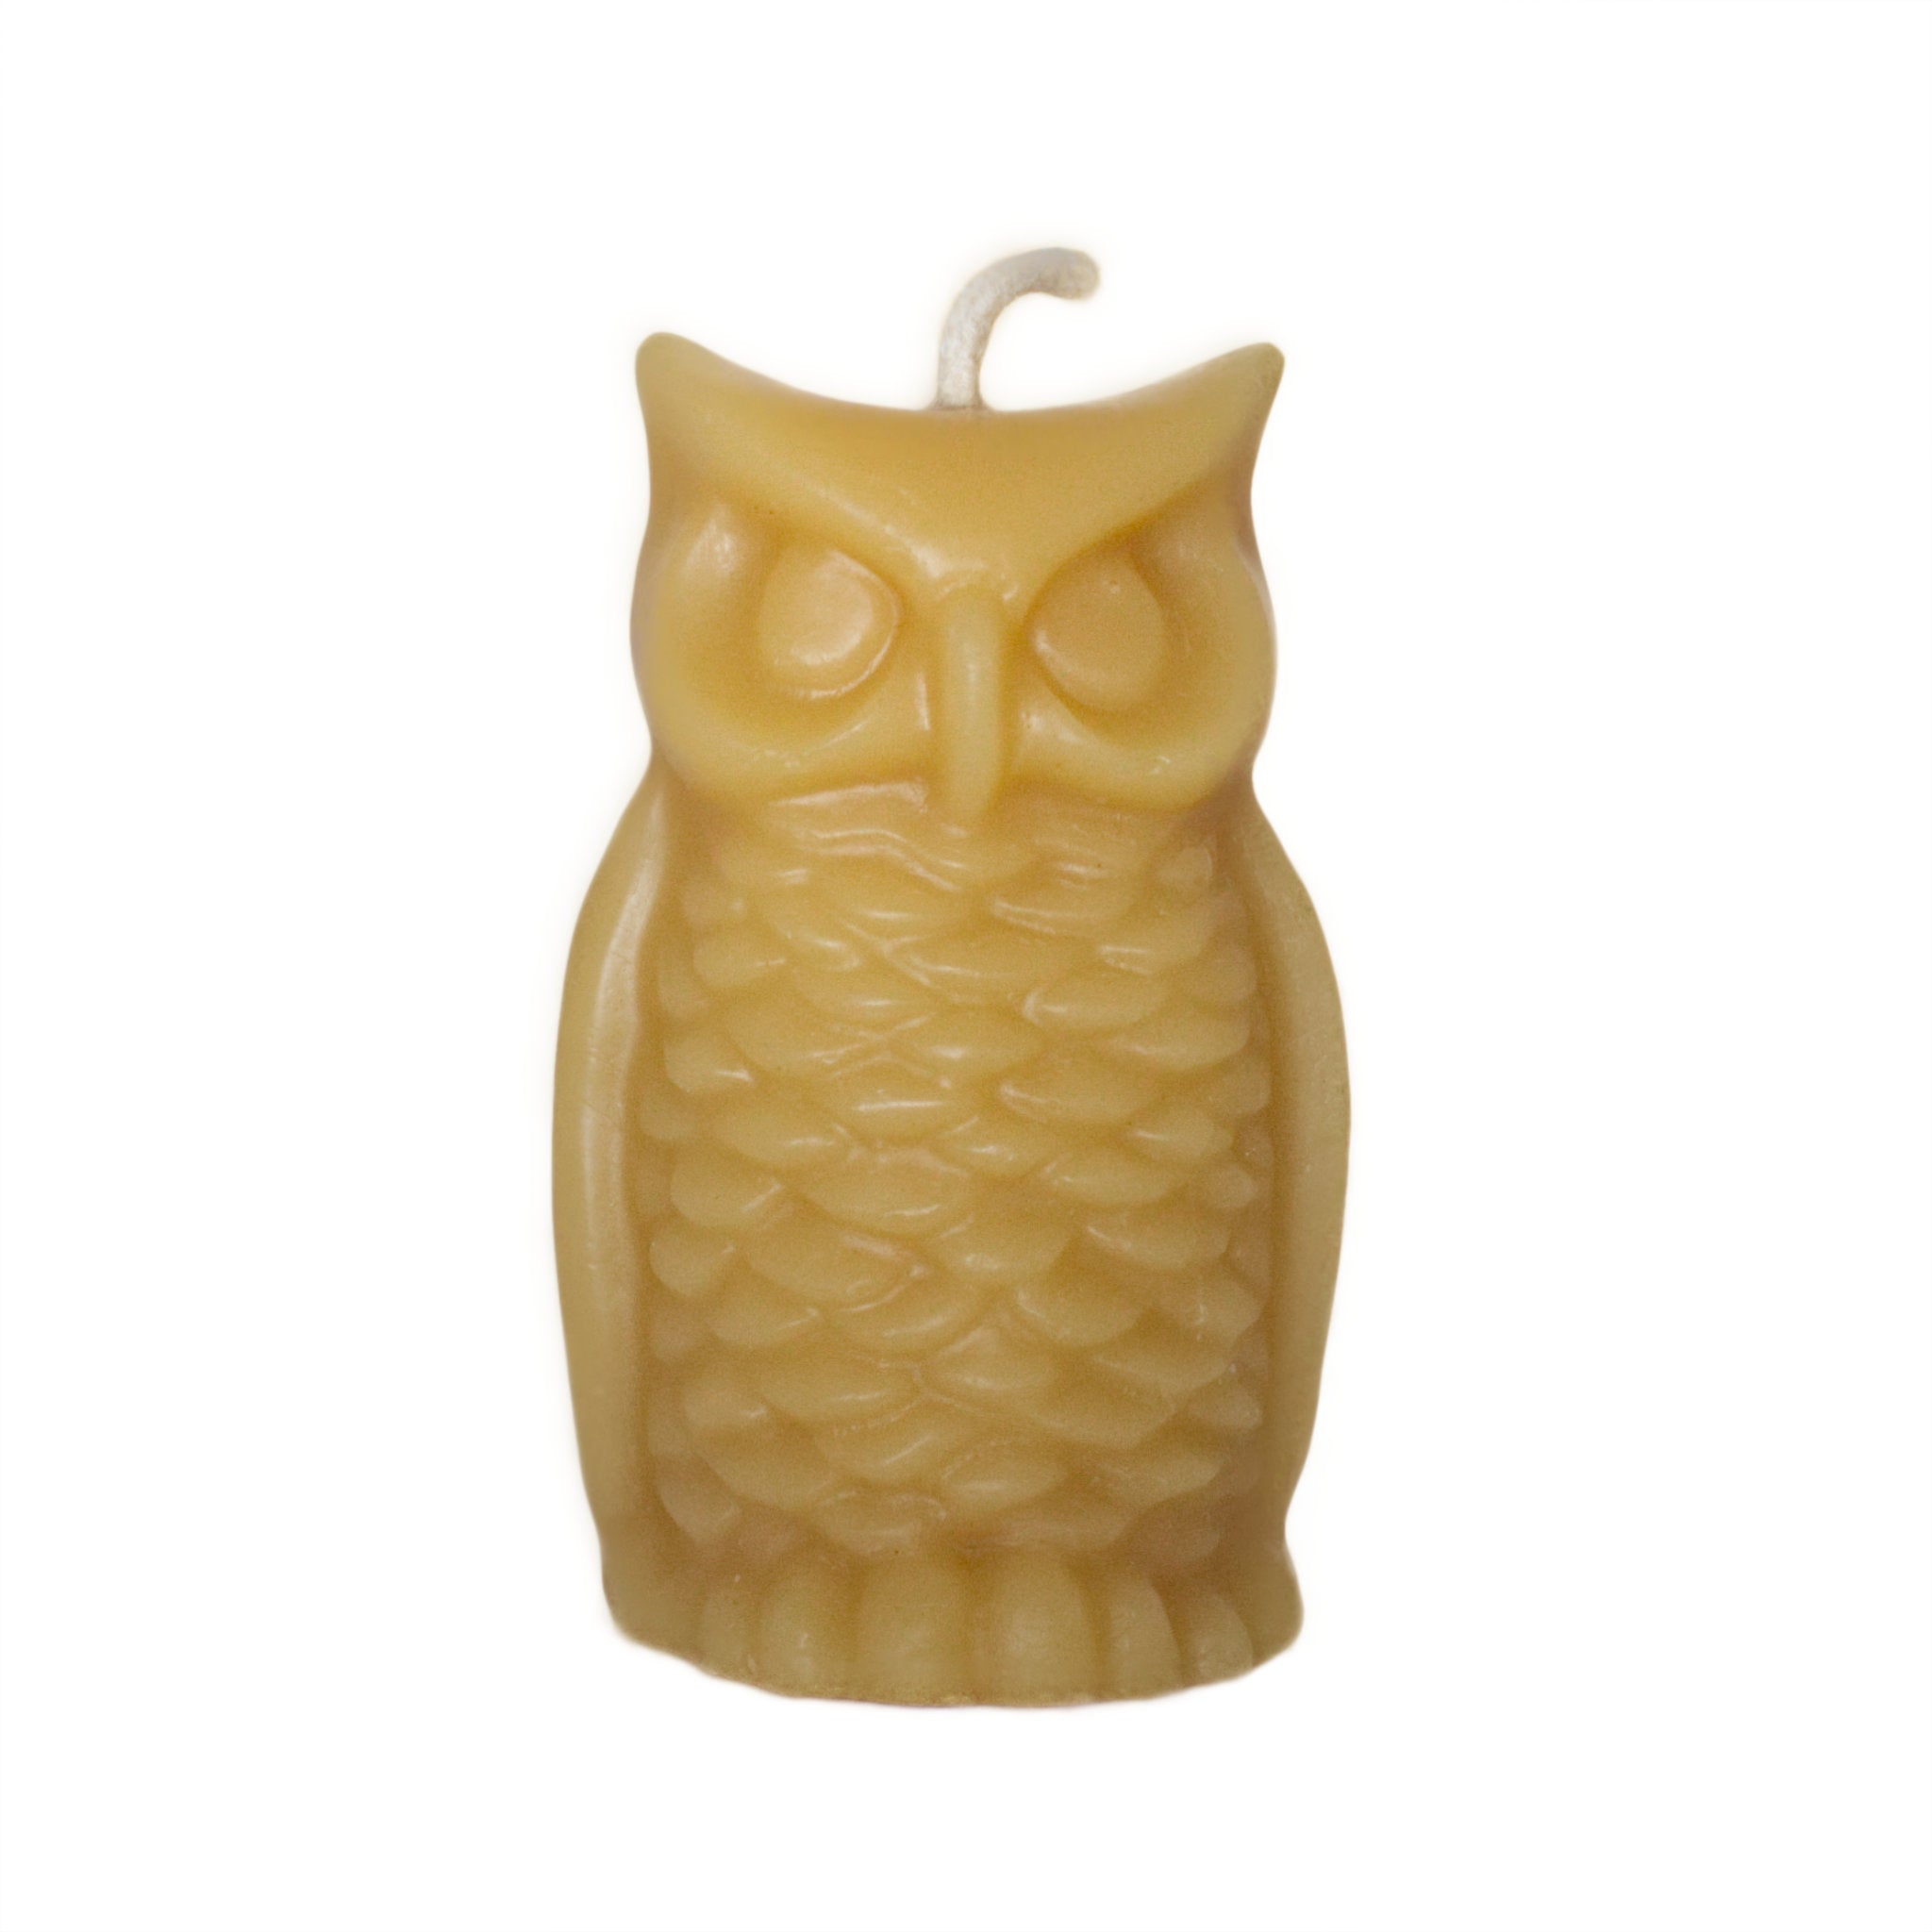 Beeswax candle owl ornamental